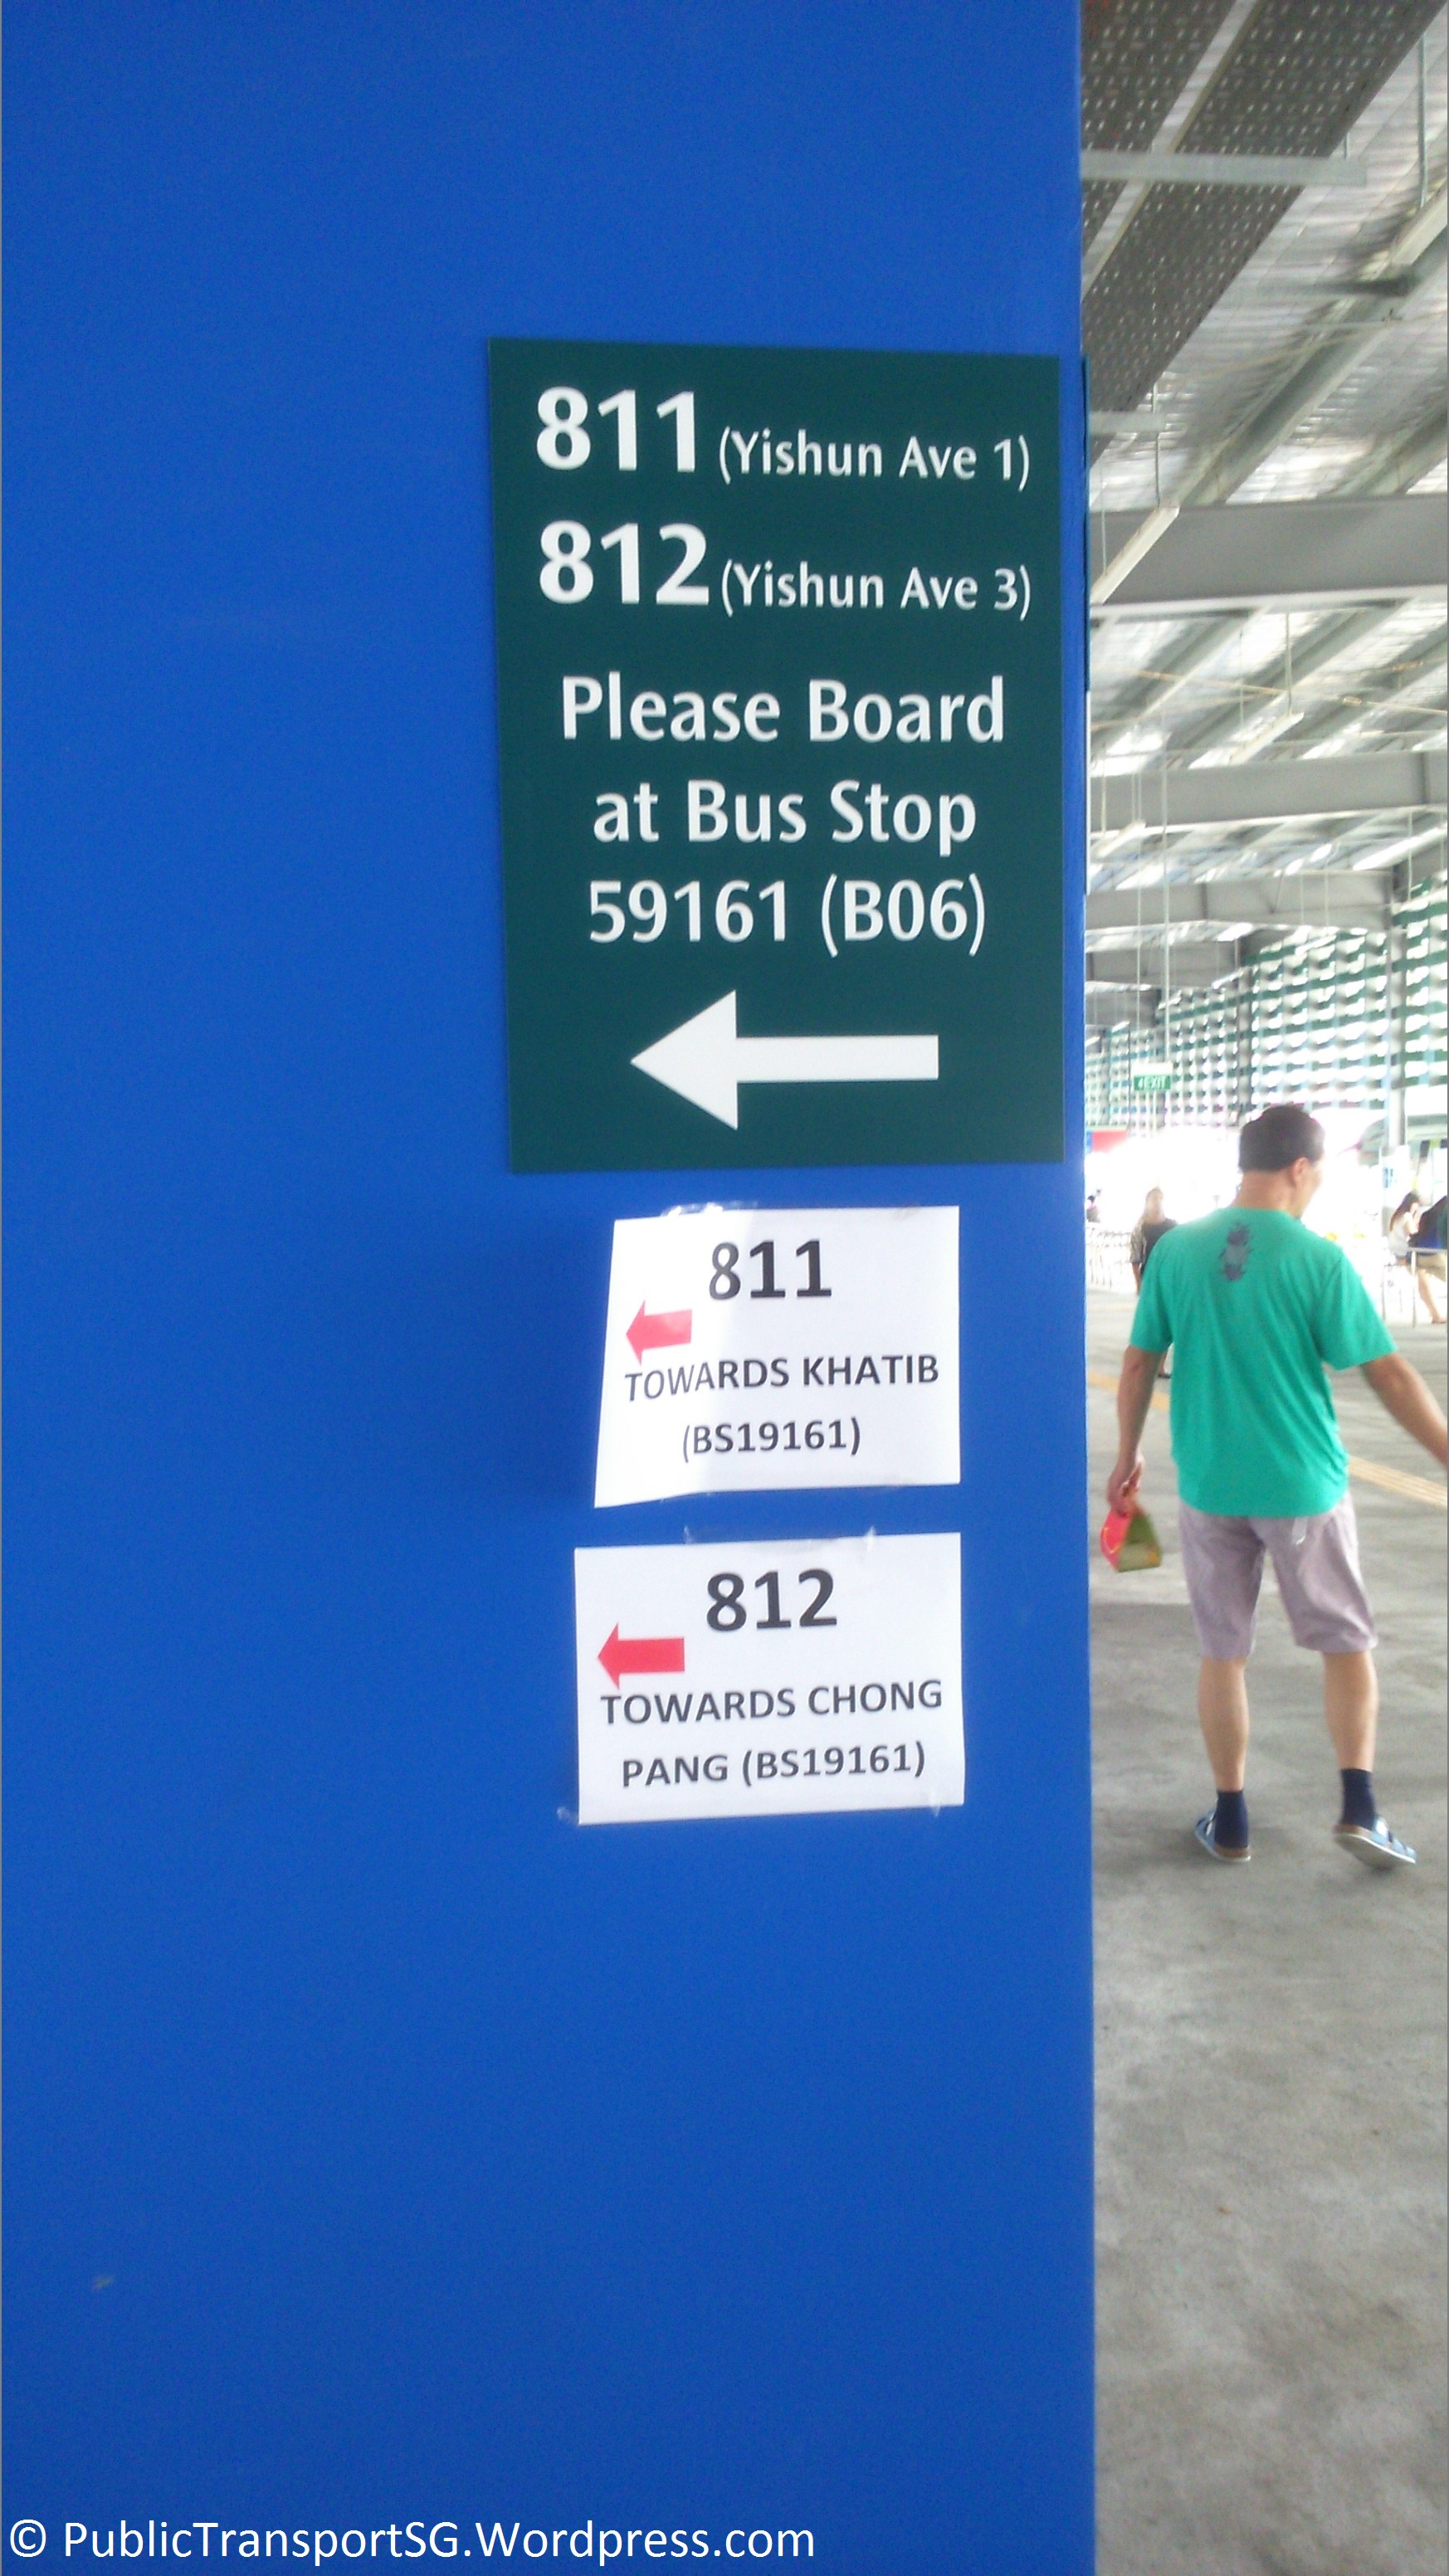 Follow the signs for to bus stop 59161.